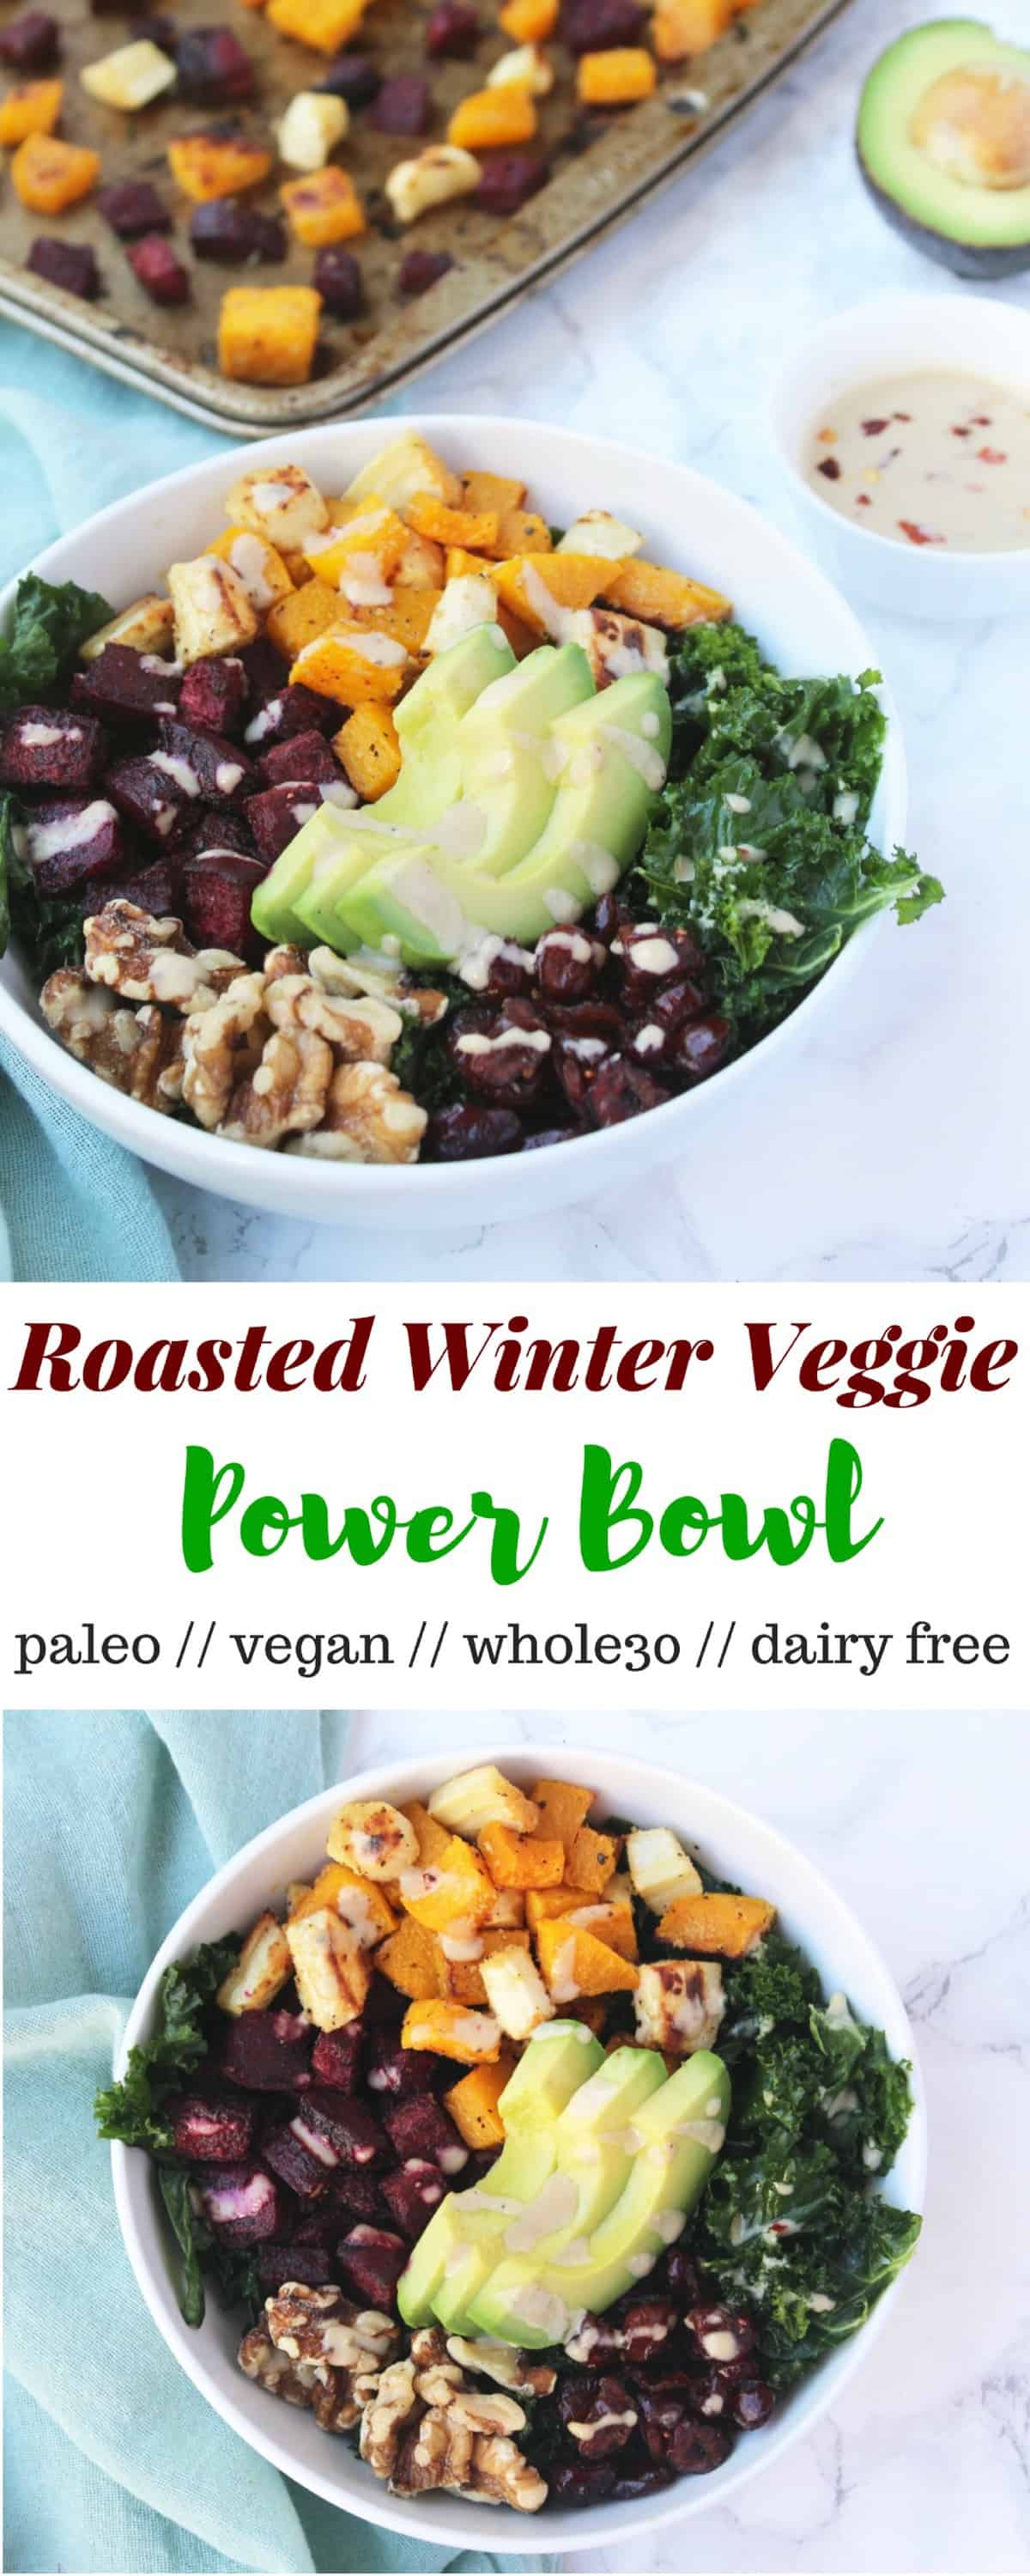 Roasted Winter Veggie Power Bowl